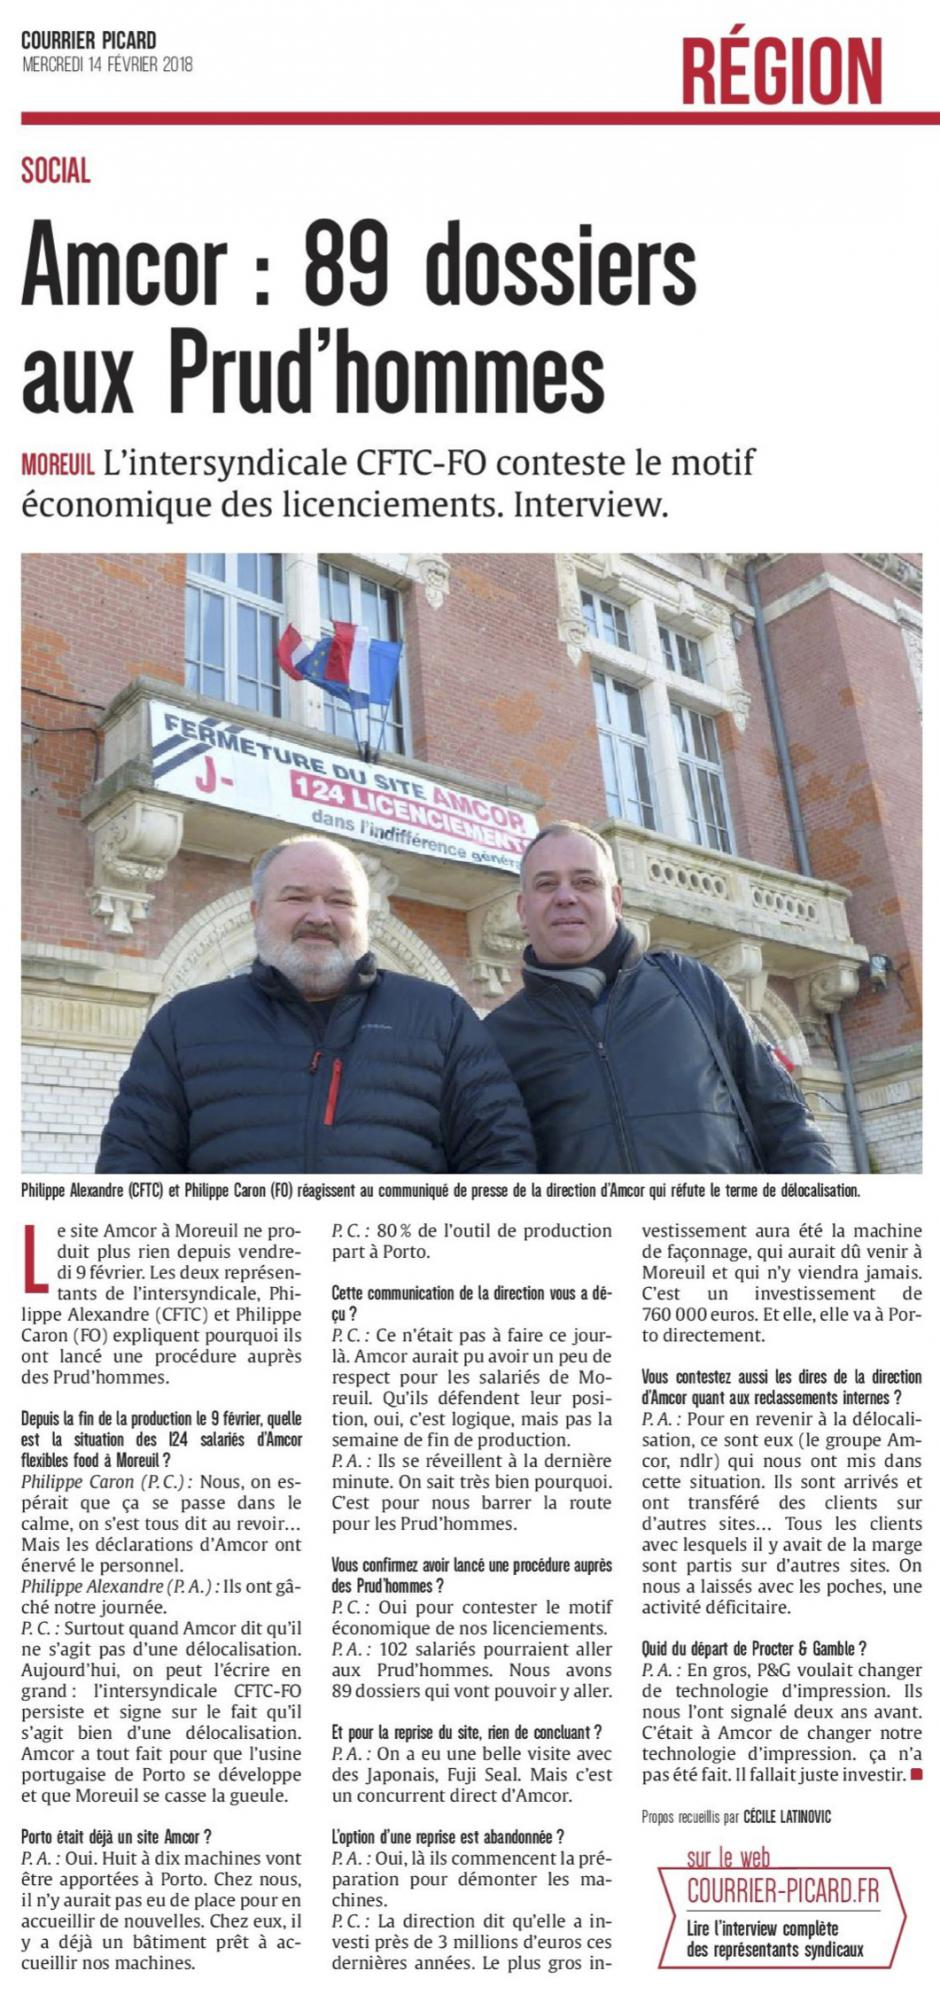 20180214-CP-Moreuil-Amcor : 89 dossiers aux Prud'hommes